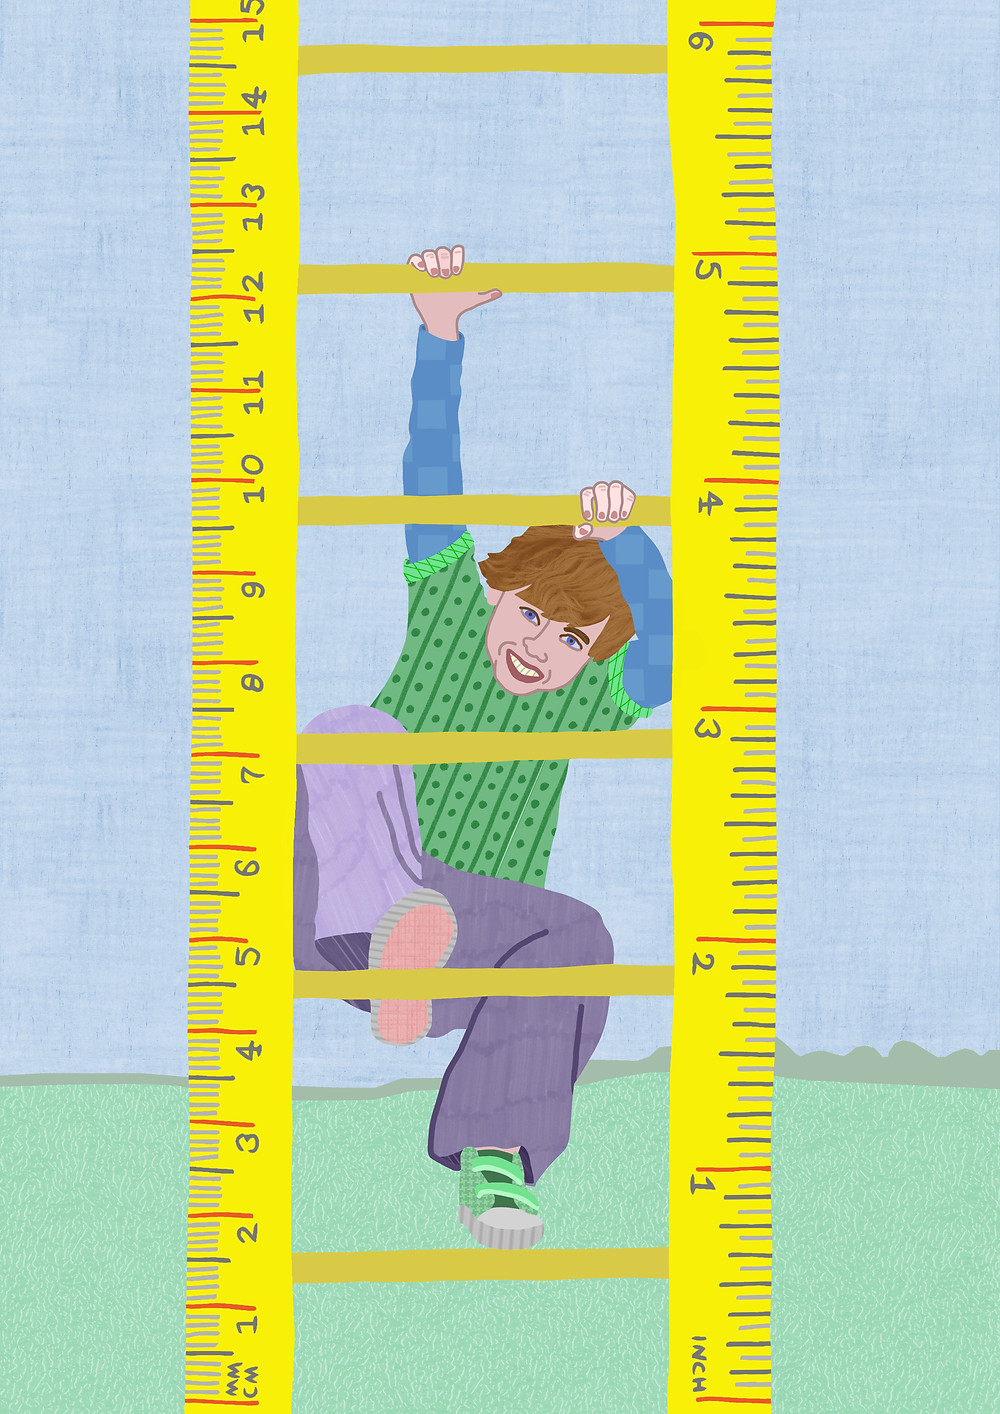 (Boy climbing ruler): This illustration was used by Dutch philosophy magazine Phronesis as their latest cover. The issue was about education and the main article argued that children's development can't and shouldn't be measured.